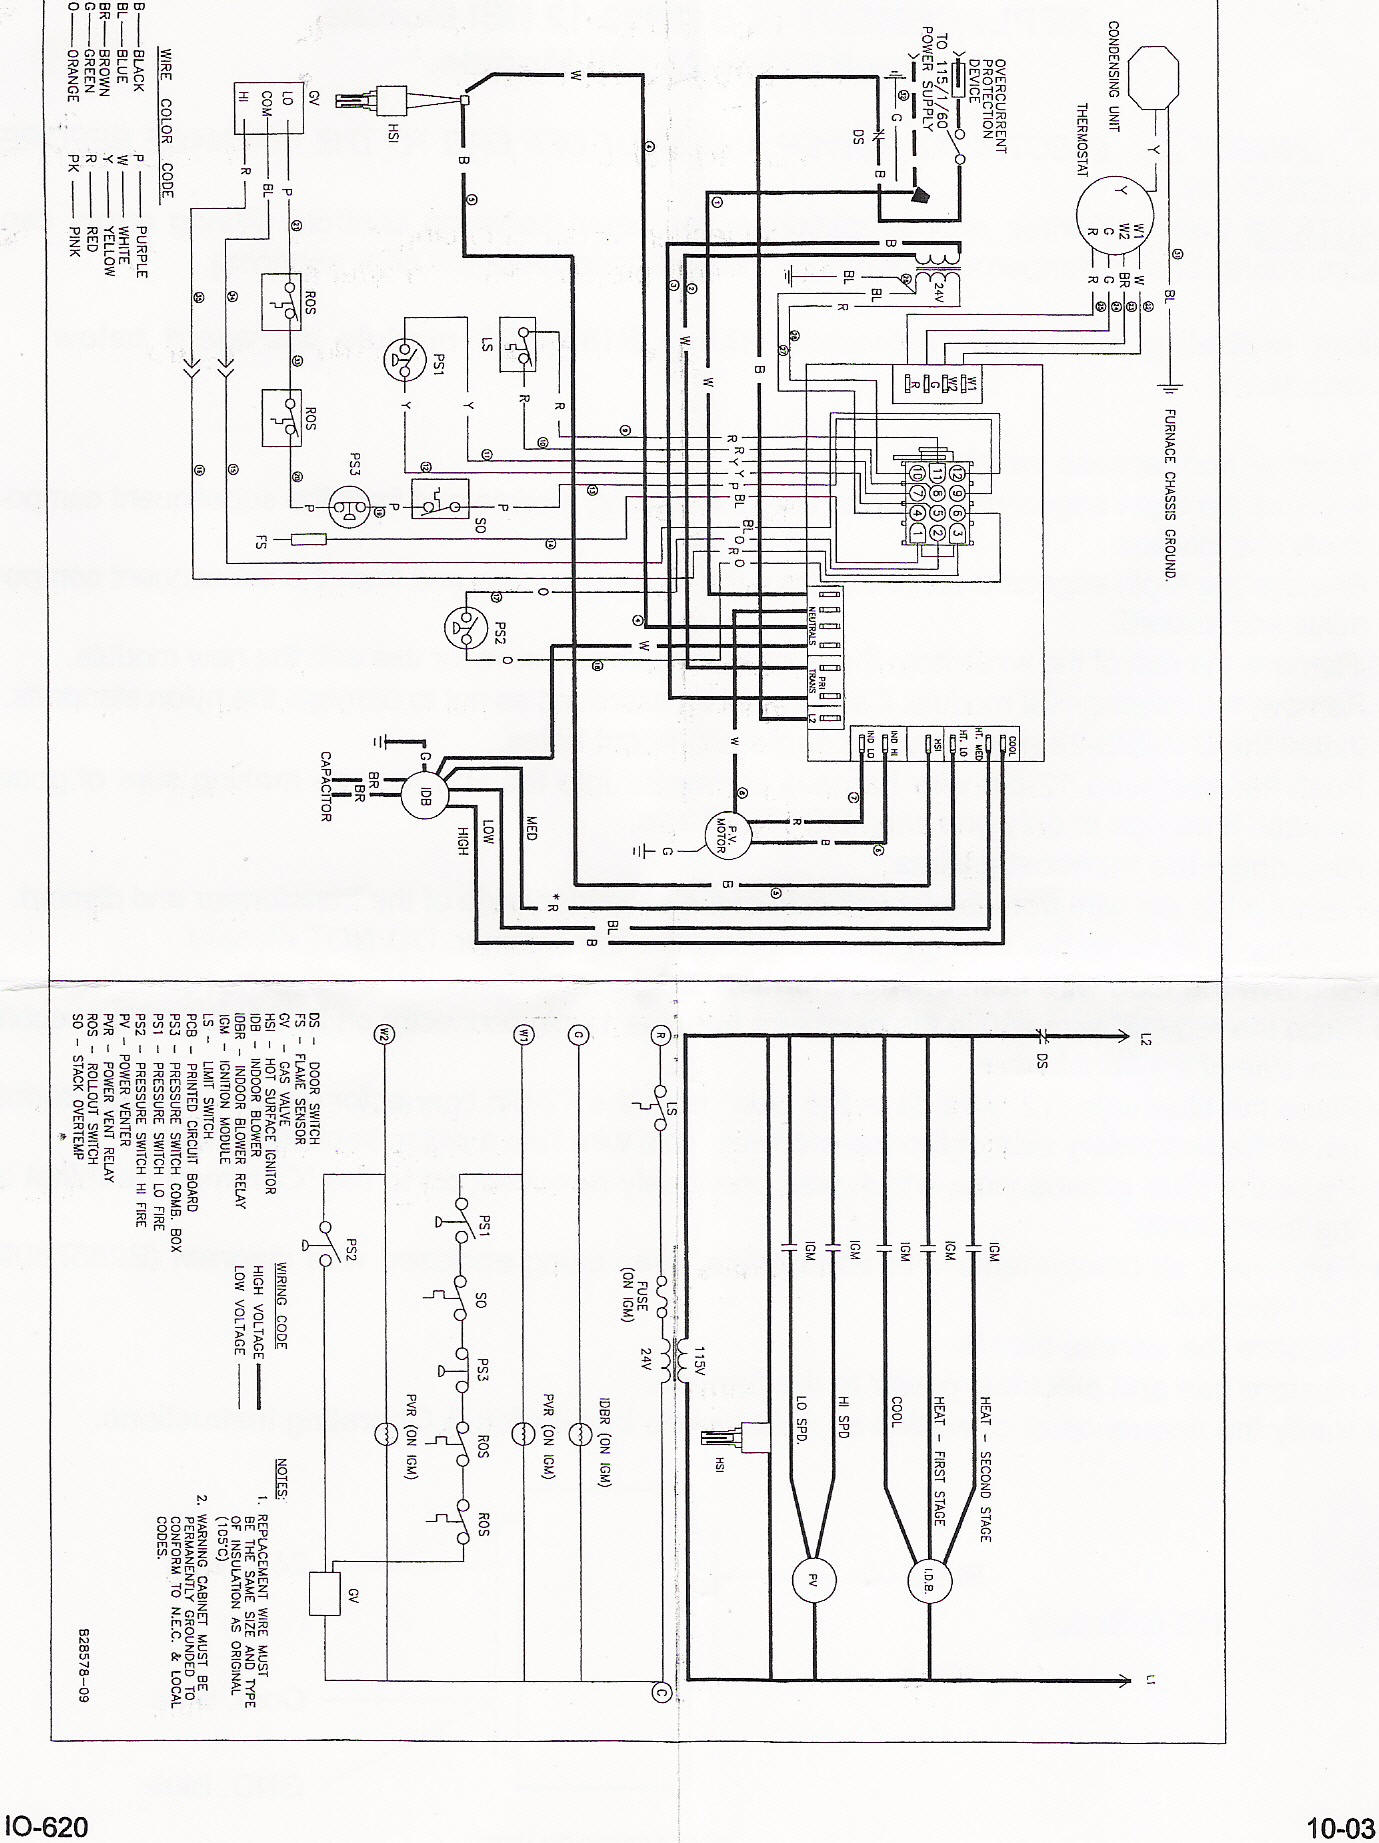 goodma2 instr goodman control board b18099 23 instructions goodman heat pump schematic diagram at bayanpartner.co